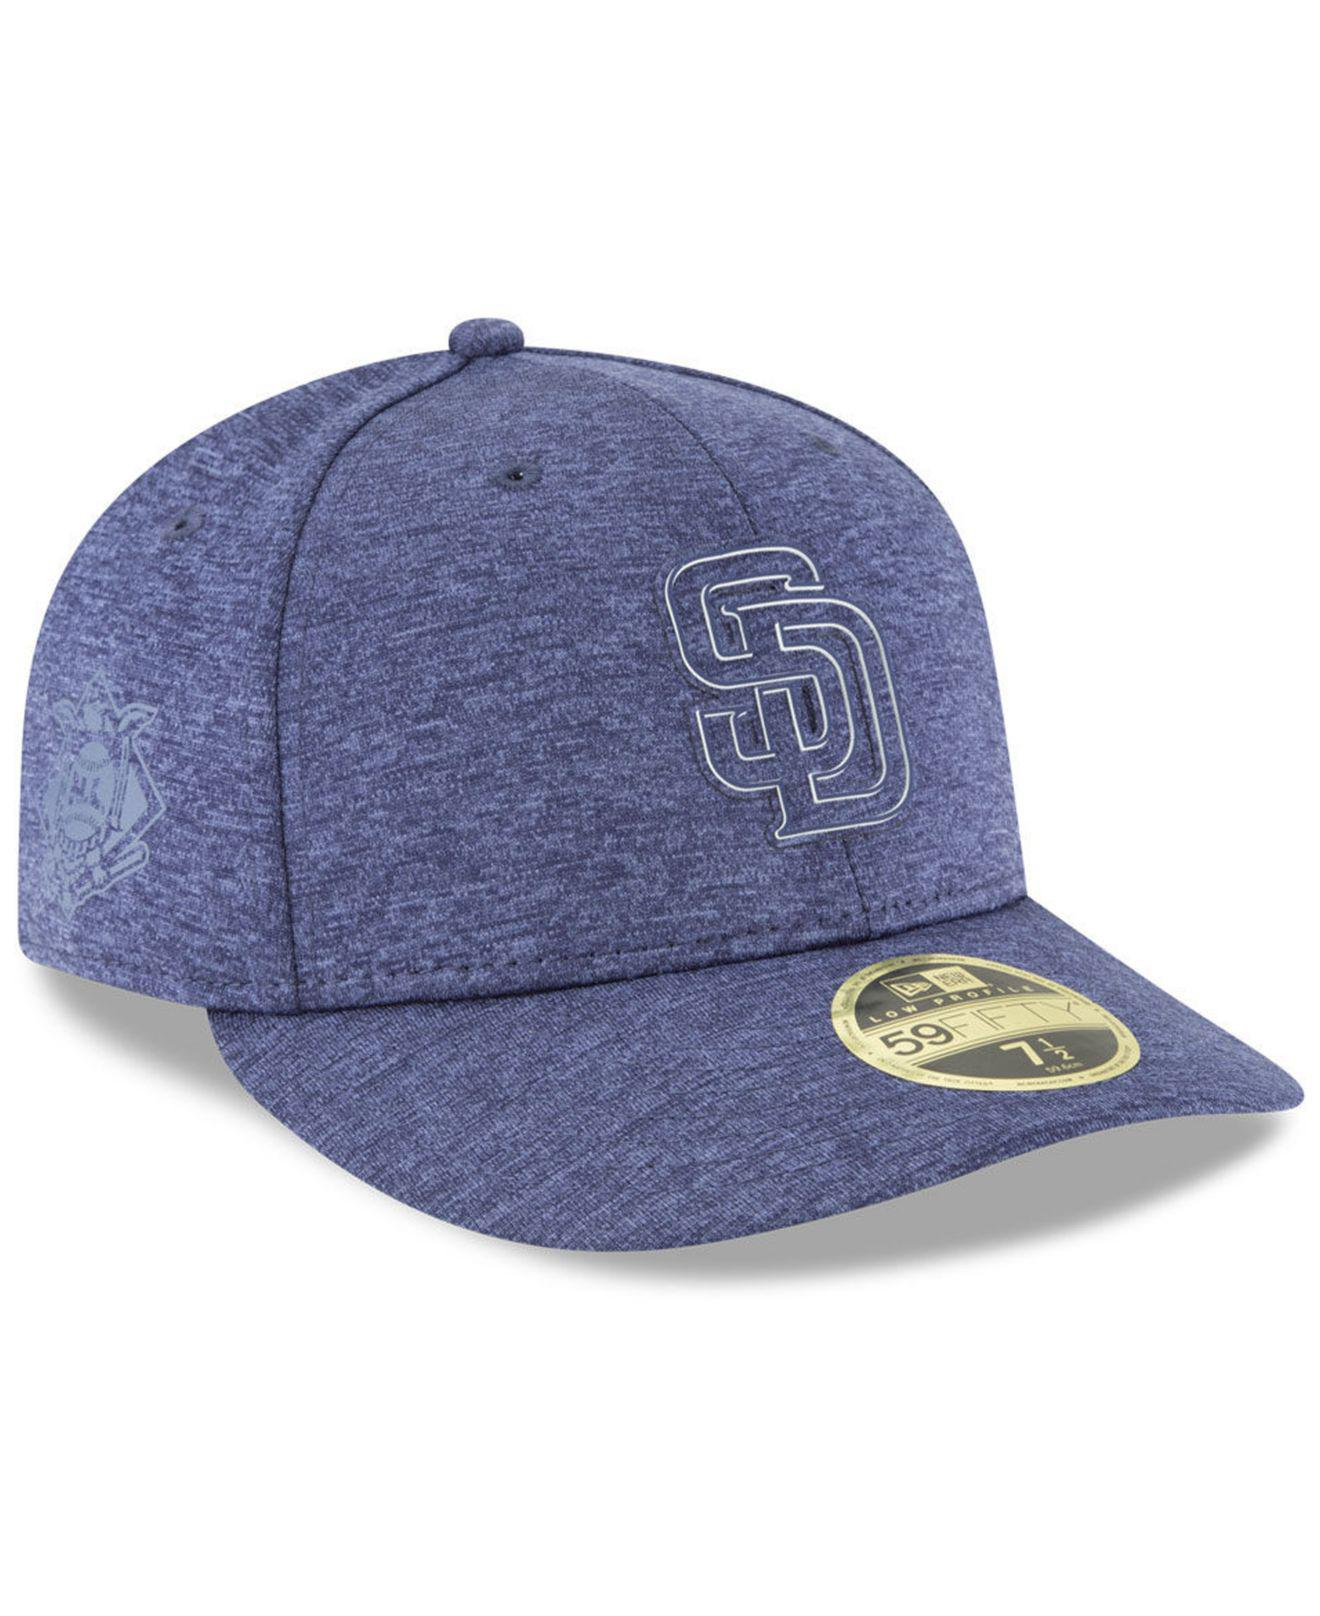 4c3b54be7 Lyst - KTZ San Diego Padres Clubhouse Low Crown 59fifty Fitted Cap ...